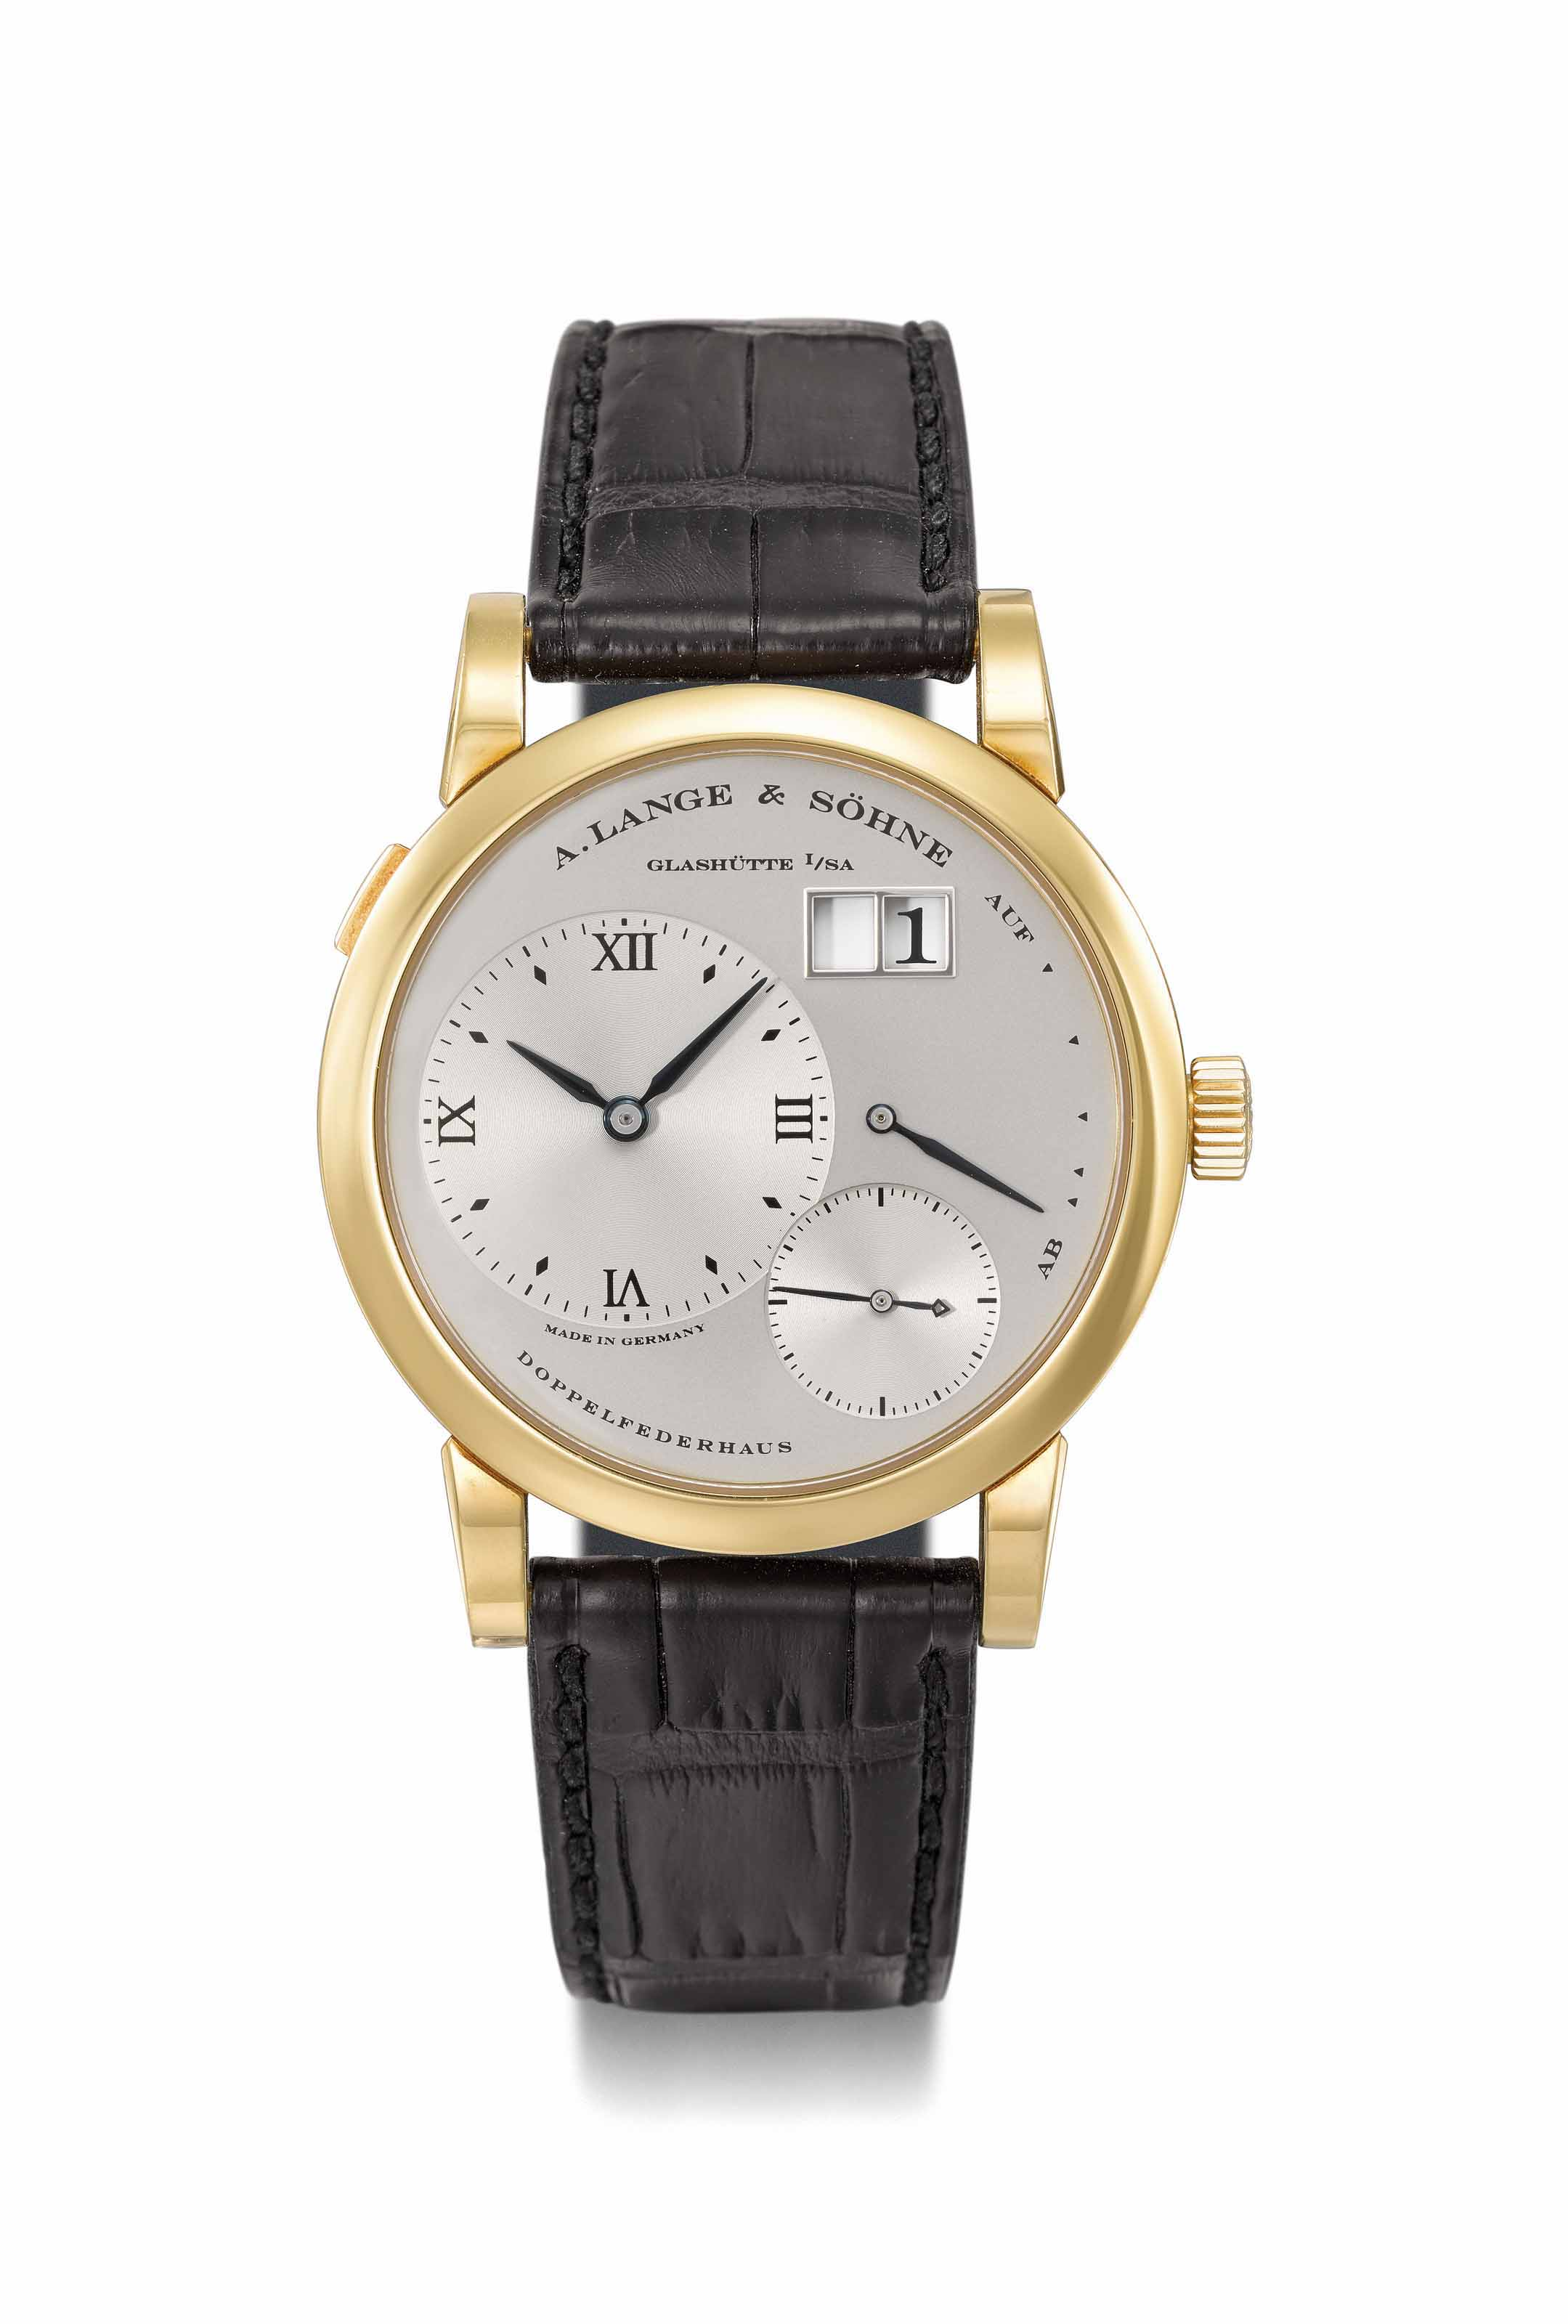 A. Lange & Söhne. A fine 18K gold twin barrel wristwatch with oversized date, power reserve, Garantie and box